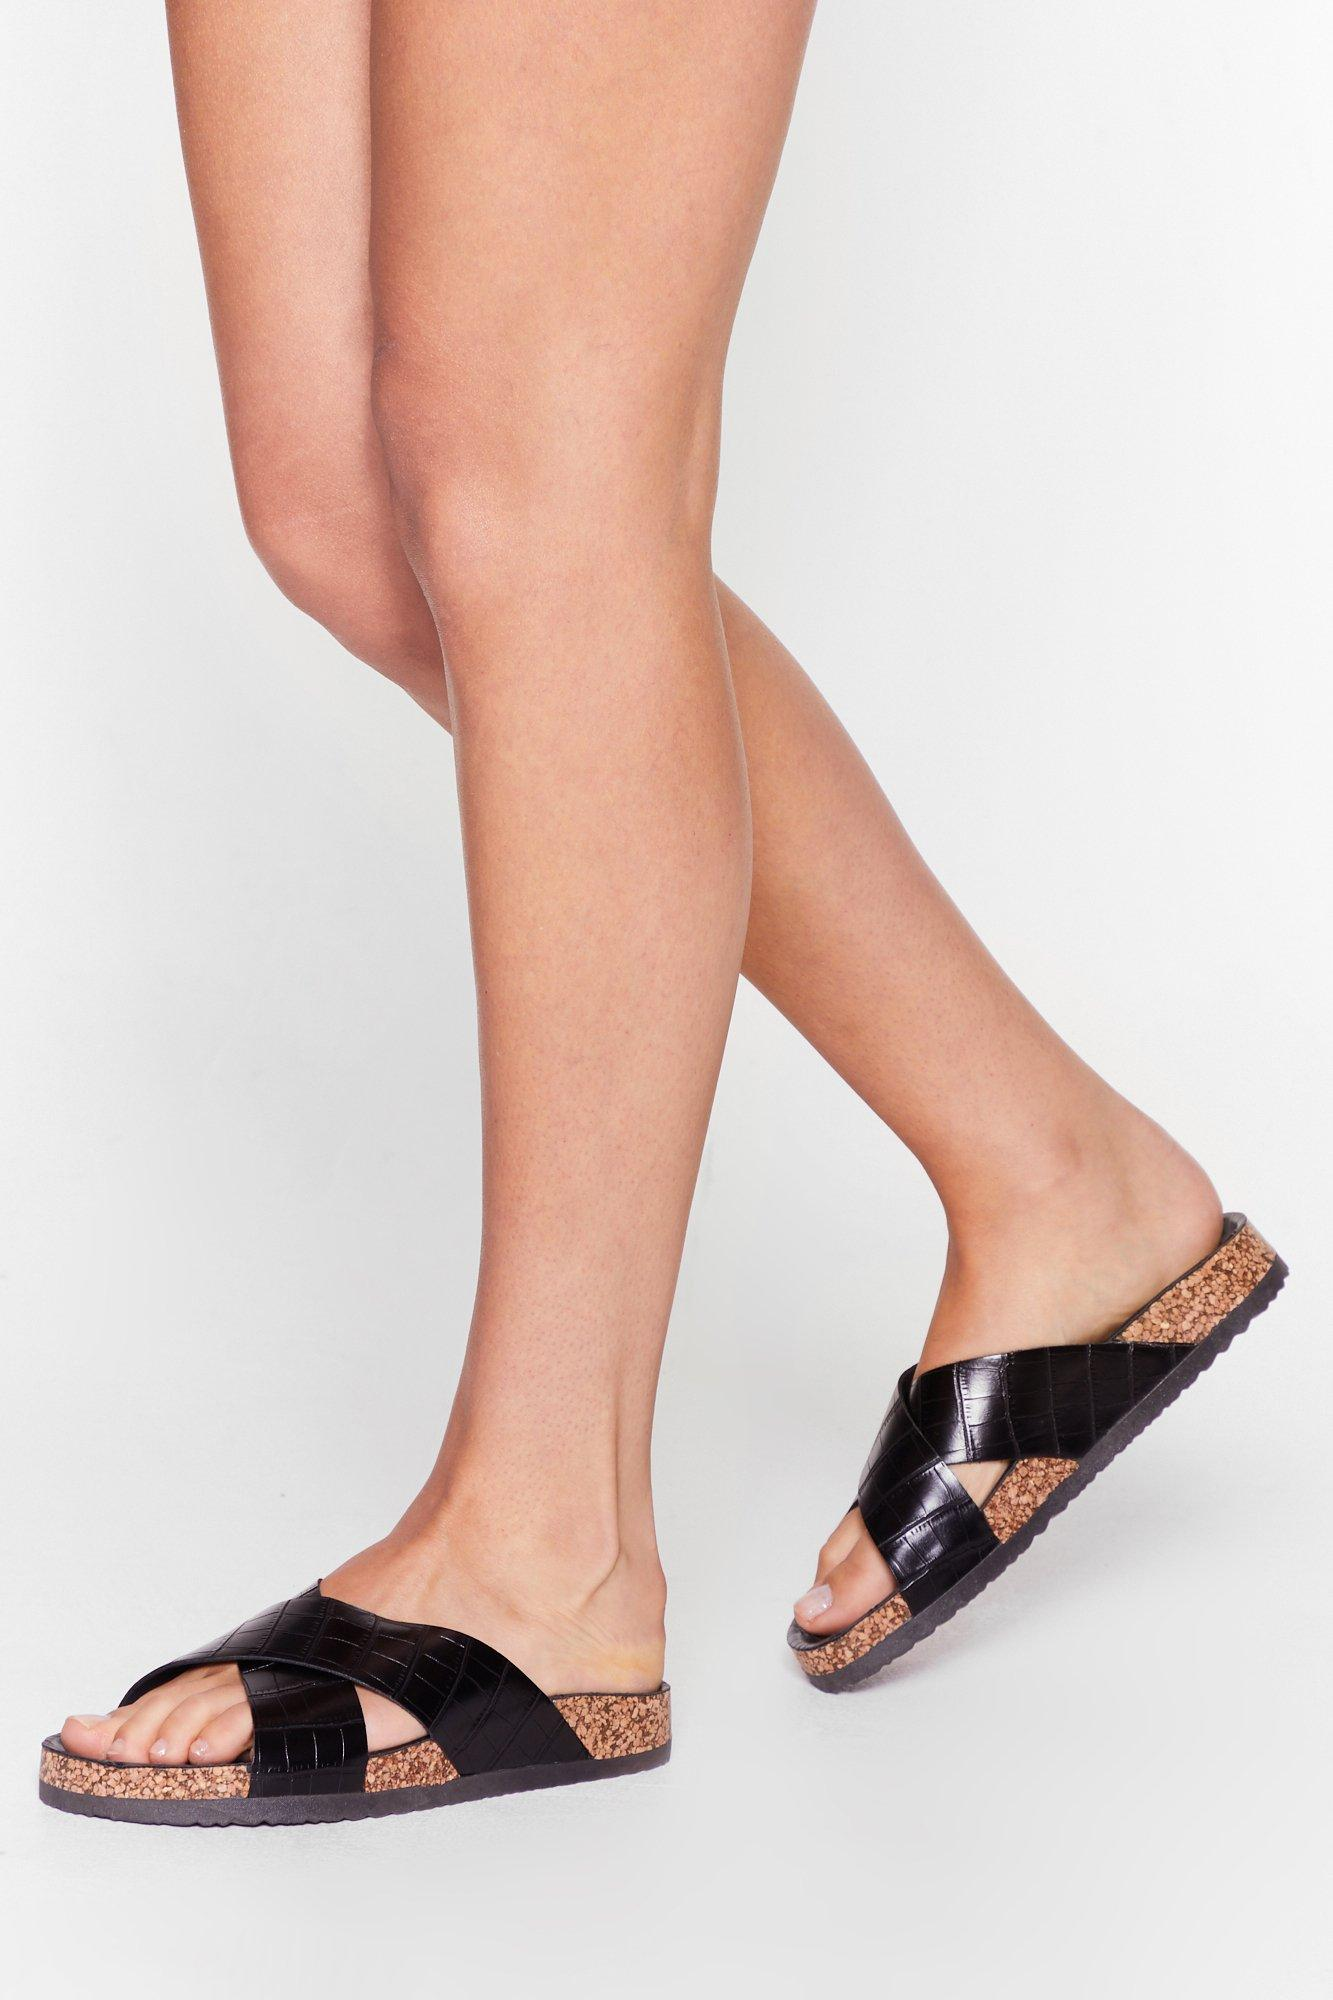 Image of Womens One Strap Mind Faux Leather Croc Sandals - Black